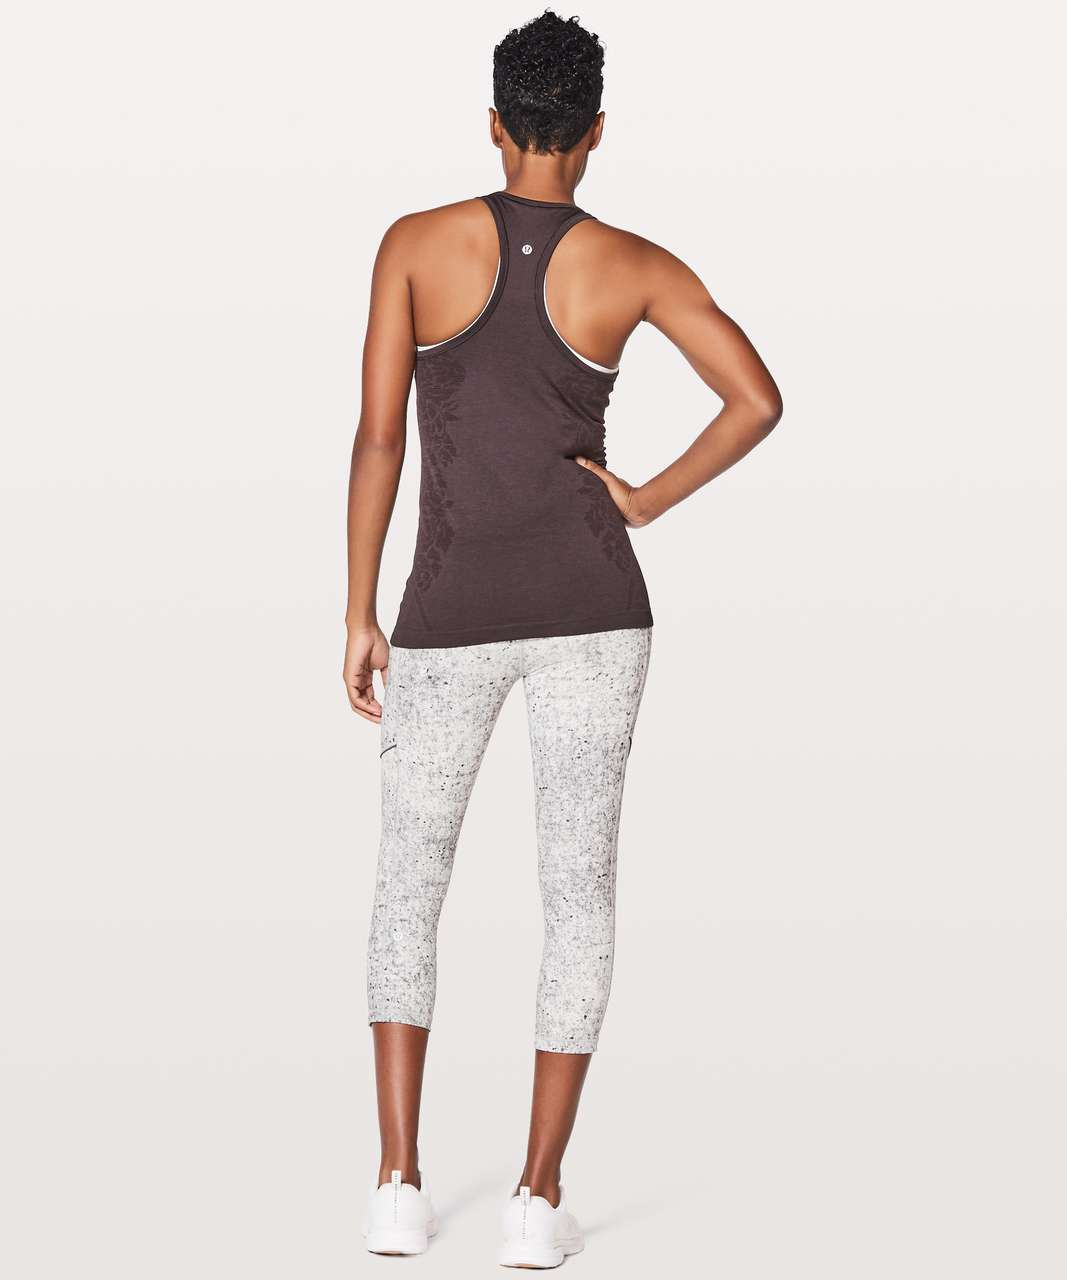 Lululemon Swiftly Tech Racerback - Black Cherry / Black